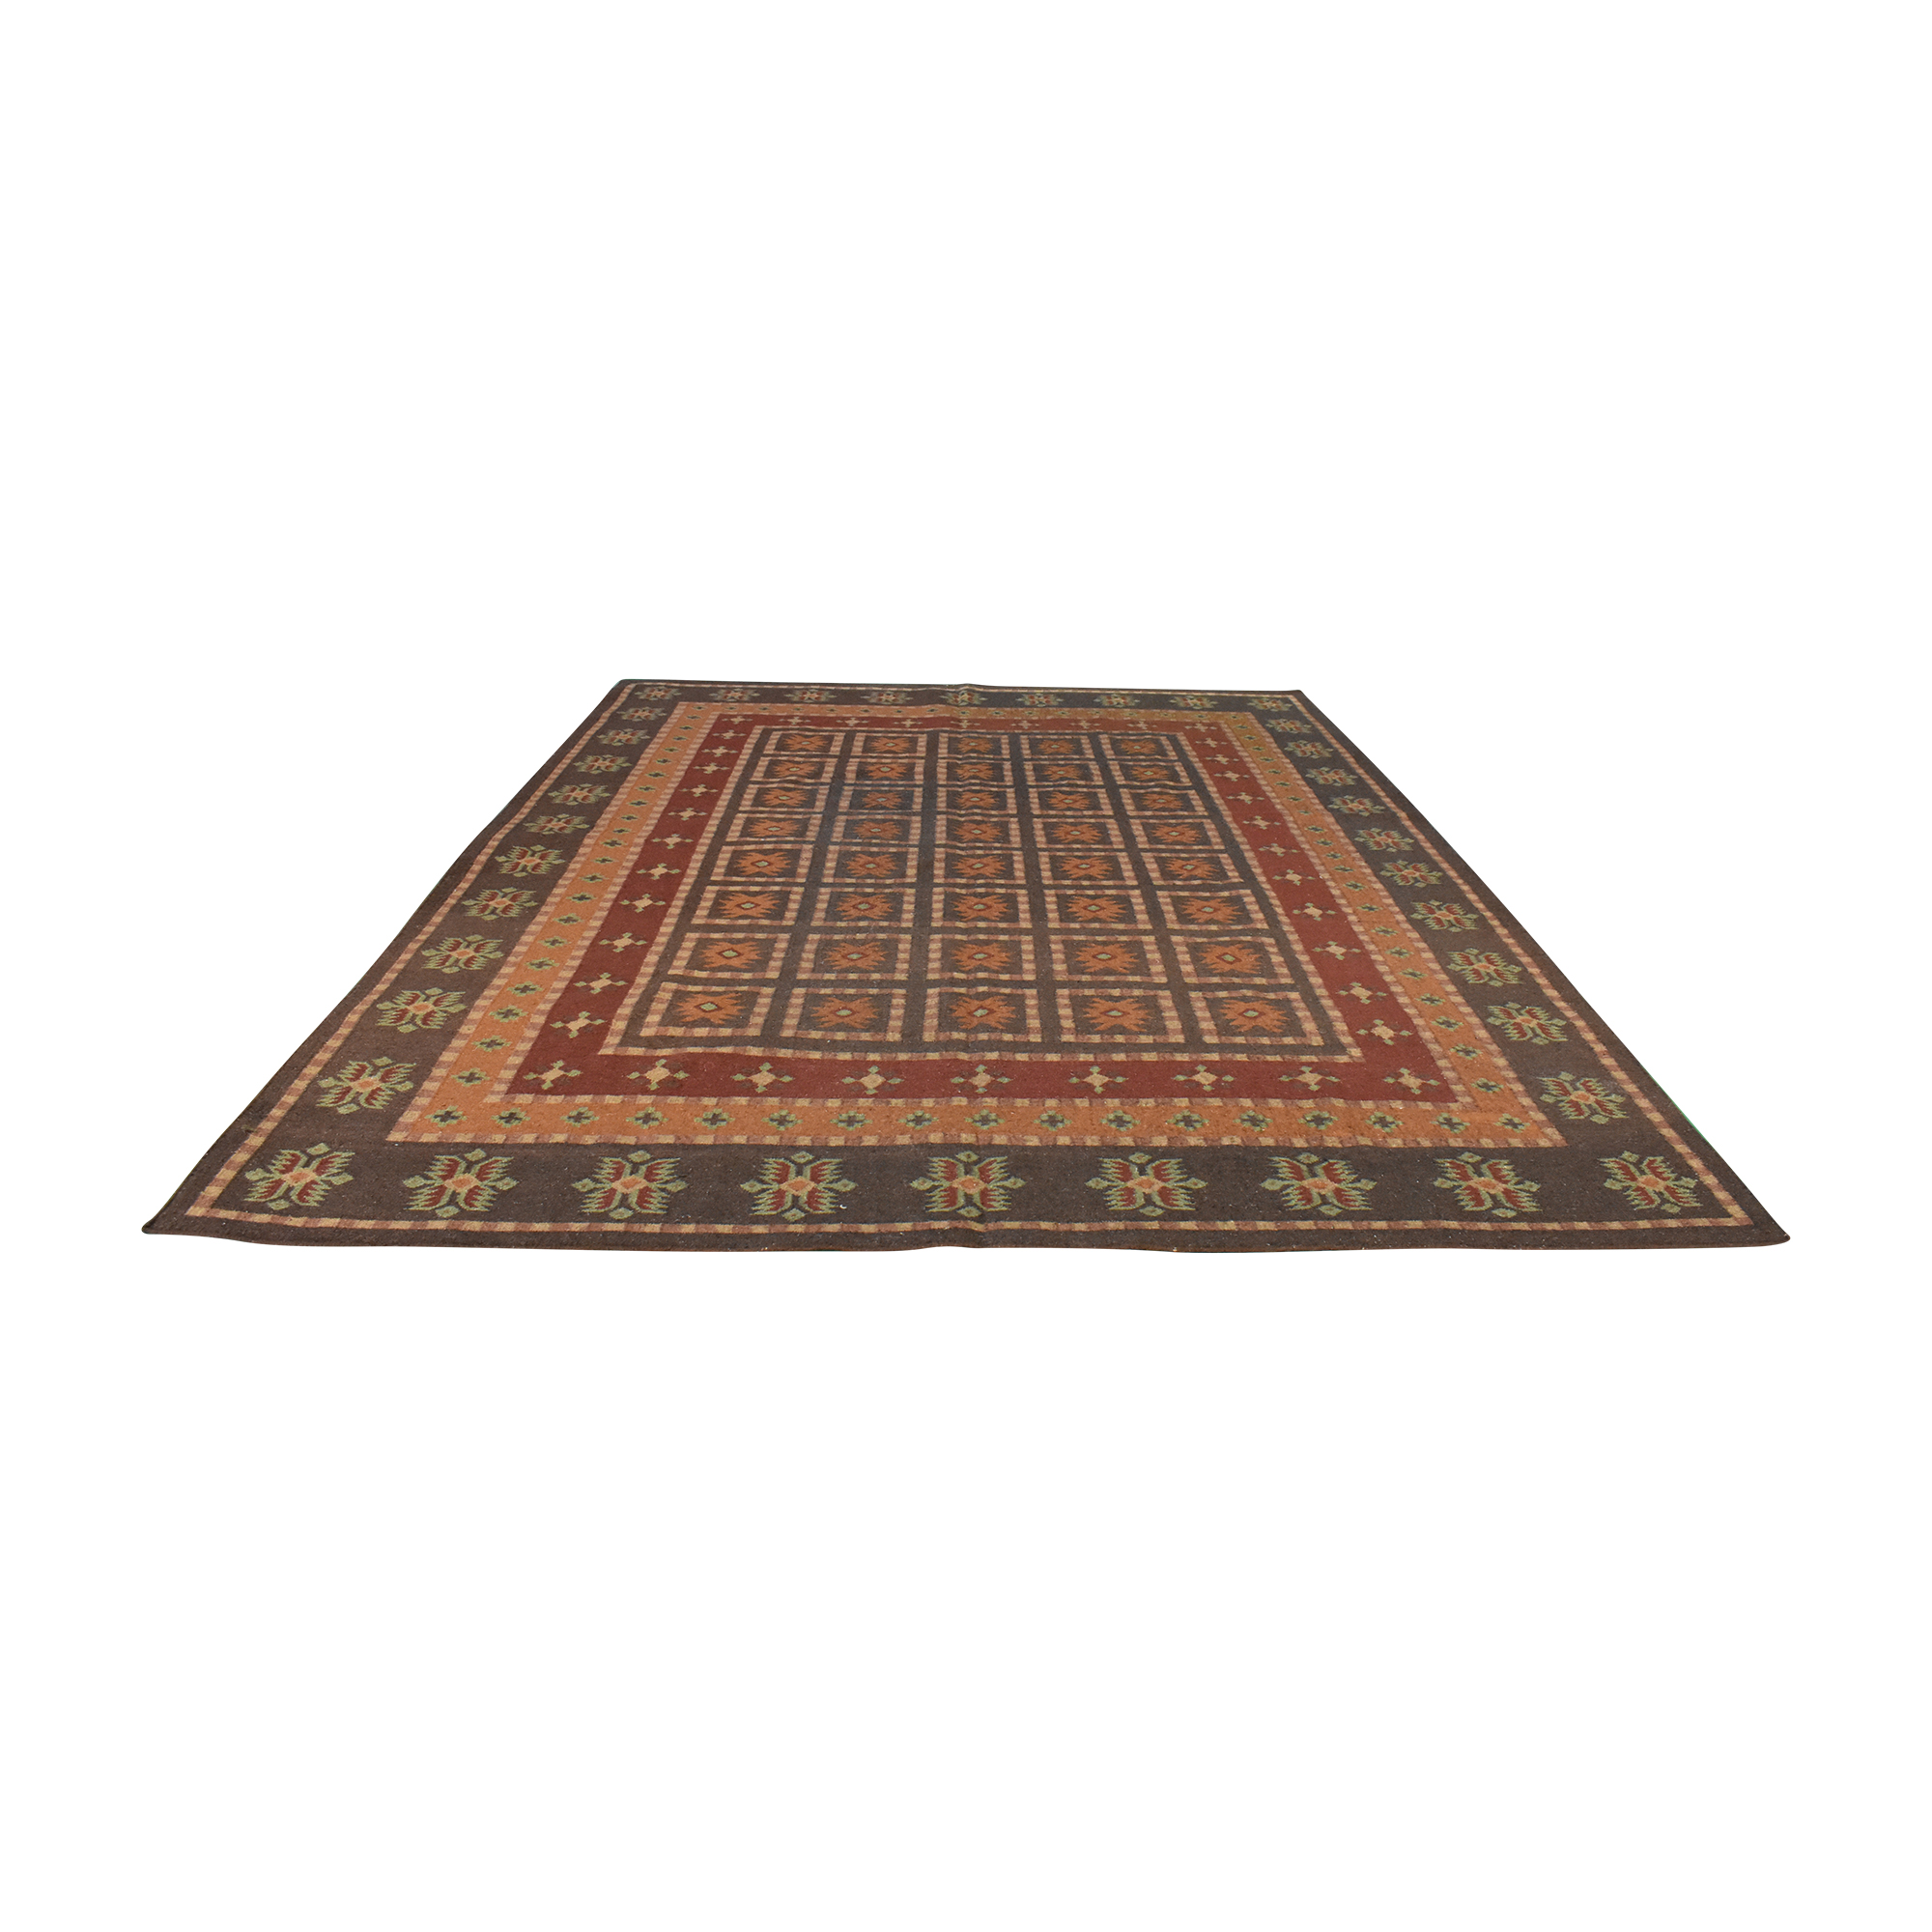 Pottery Barn Pottery Barn Patterned Area Rug used